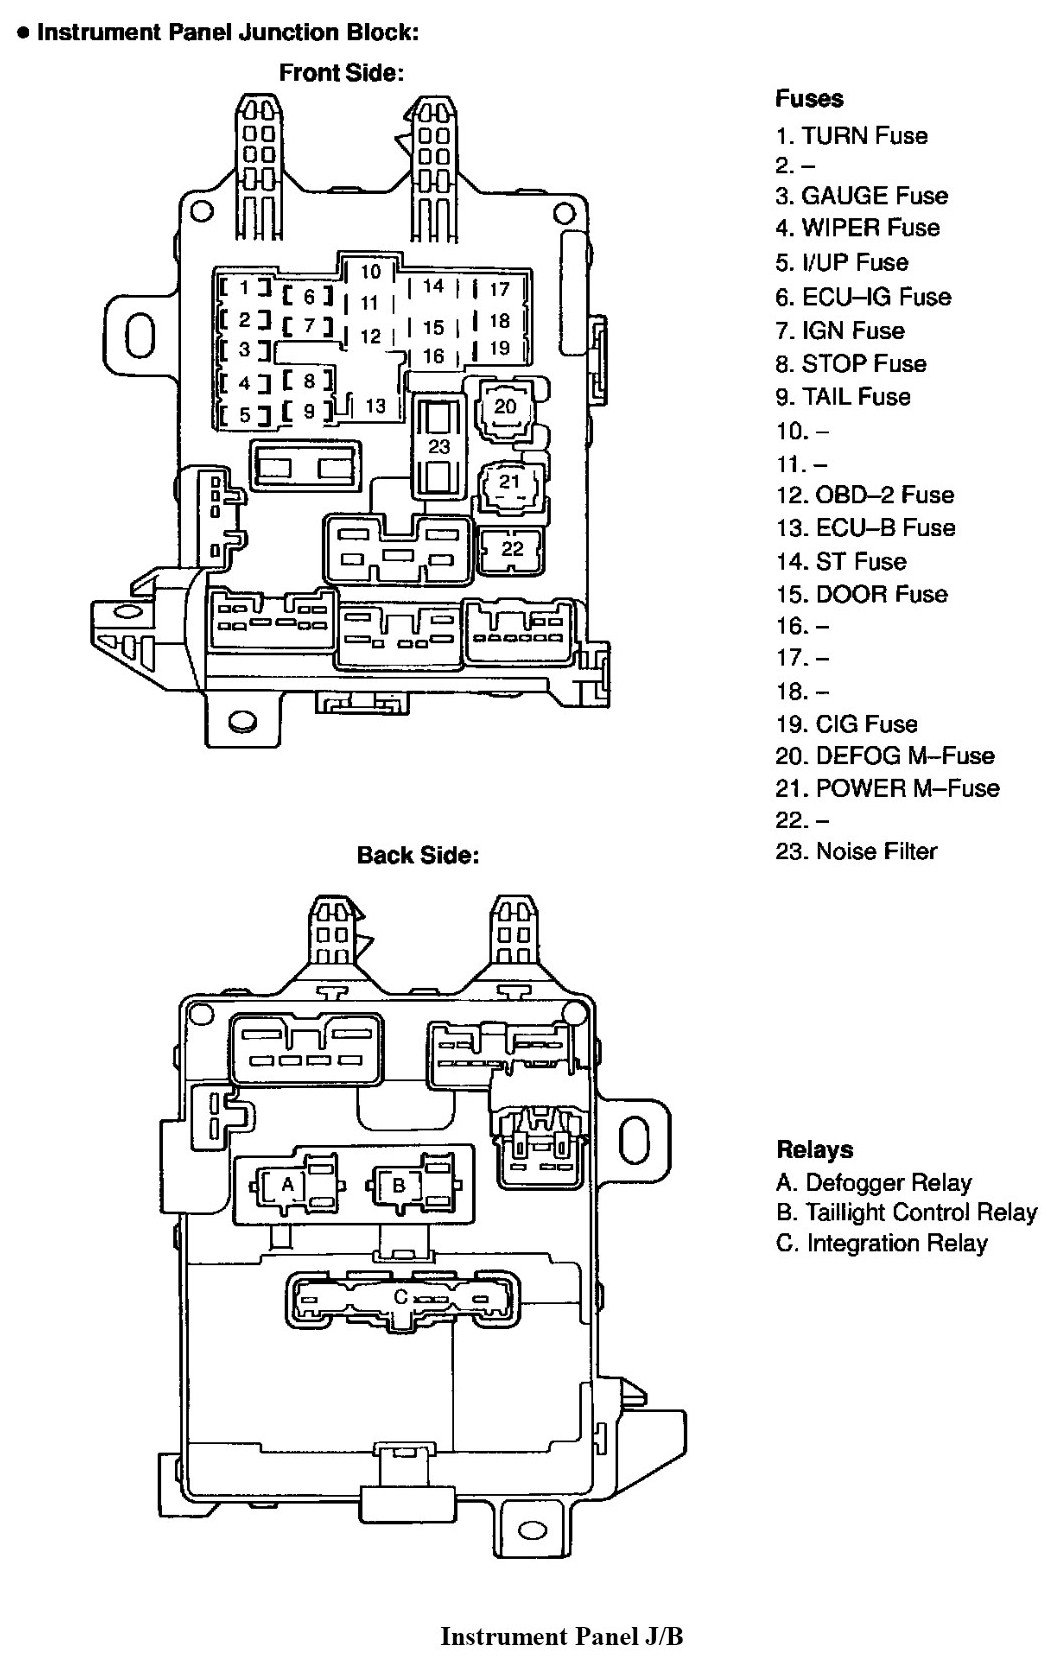 2003 Toyota Corolla Fuse Box Diagram Exploded Wiring Libraries 1999 Honda Accord For 2002 Simple Schema2001 Location